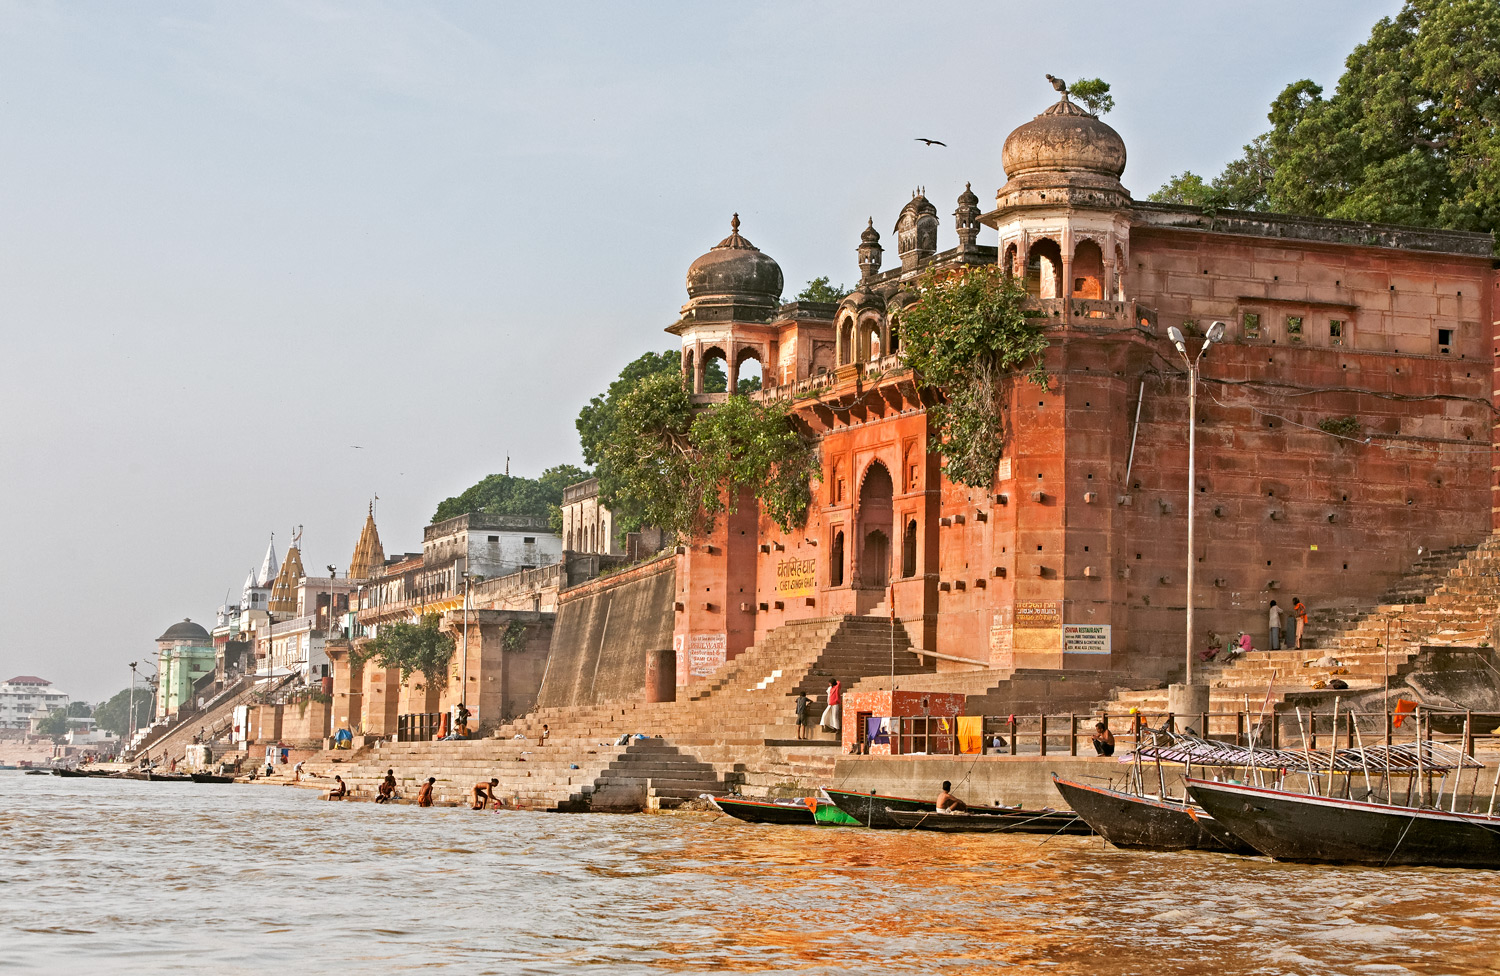 Old palace on the ghats, Varanasi, India